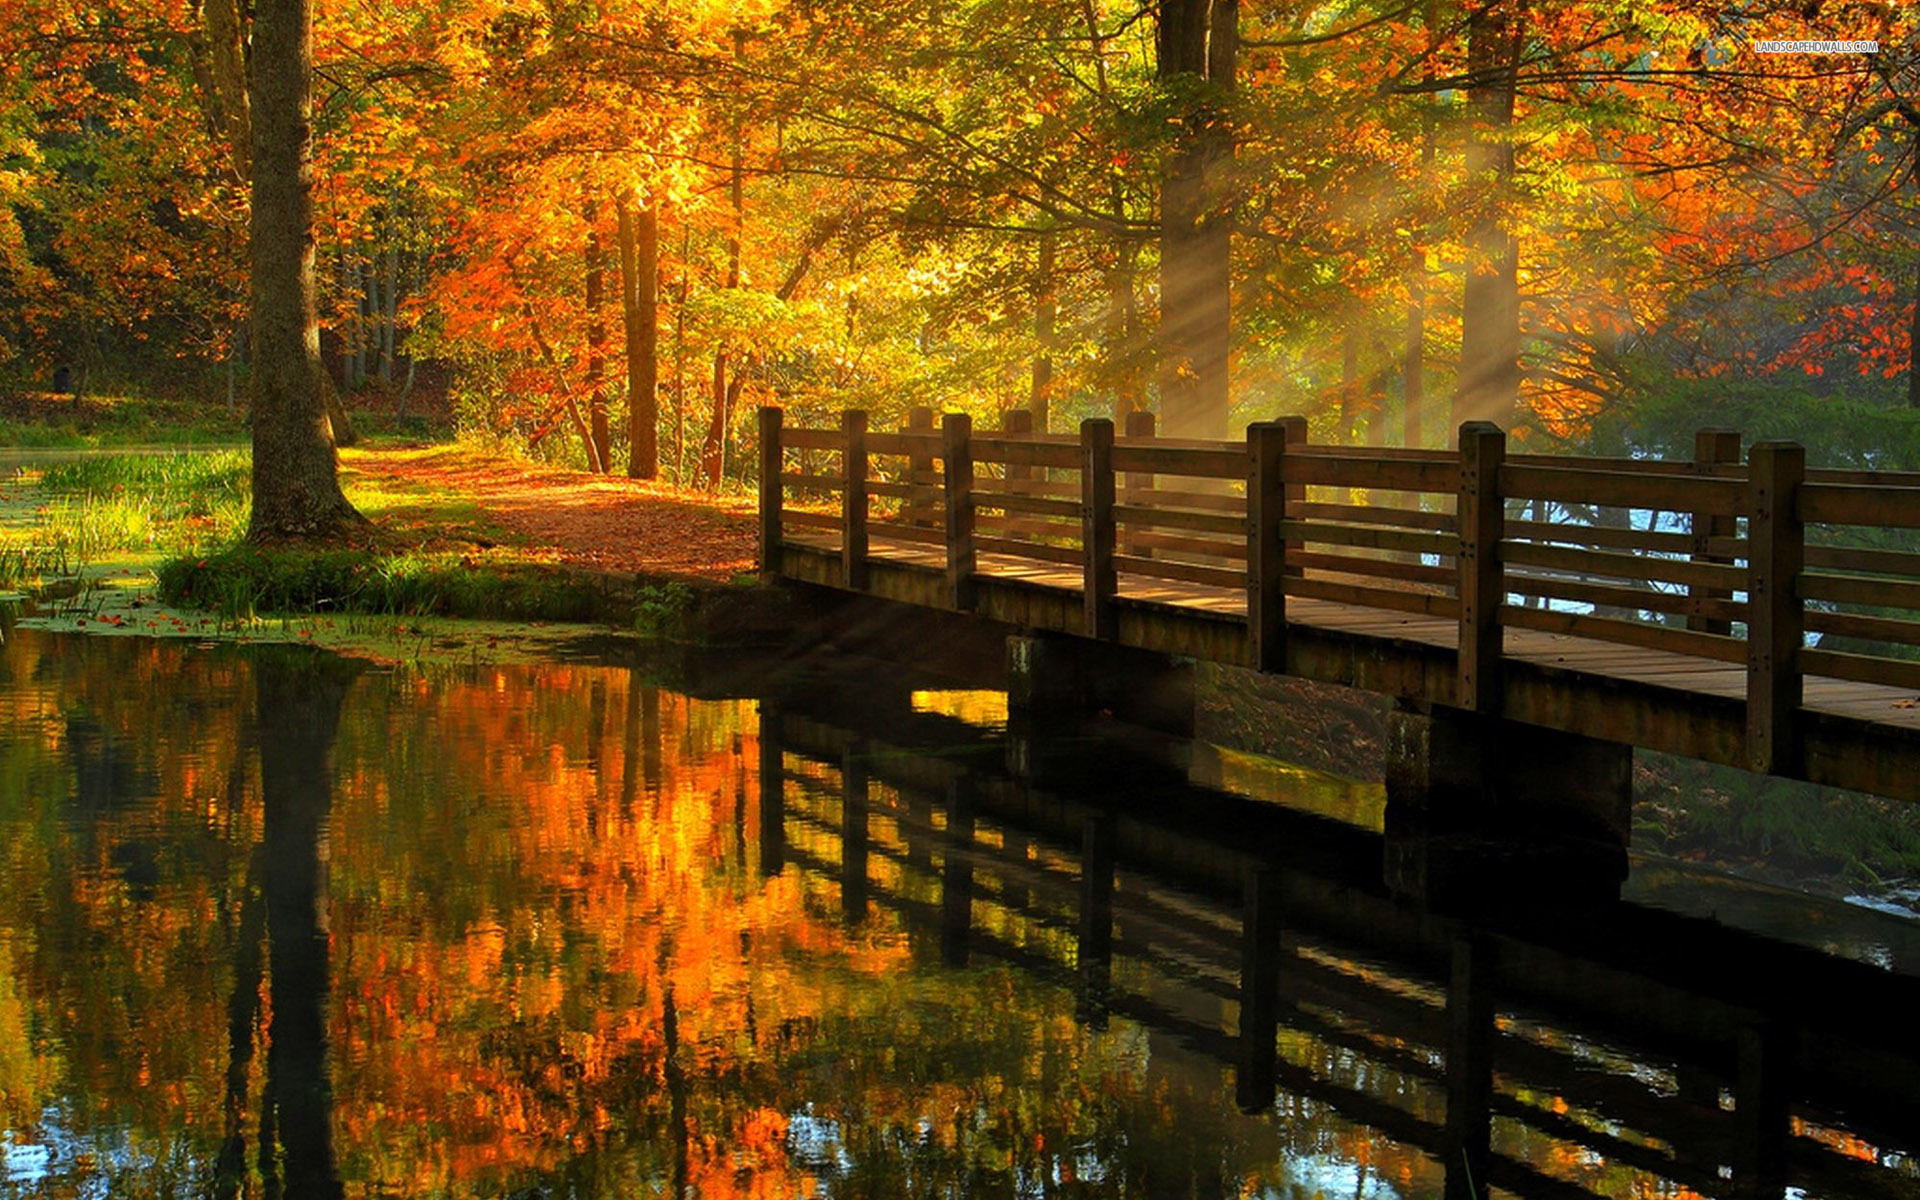 Fall Themed Wallpaper Wooden Bridge Over The River Beautiful Autumn Day